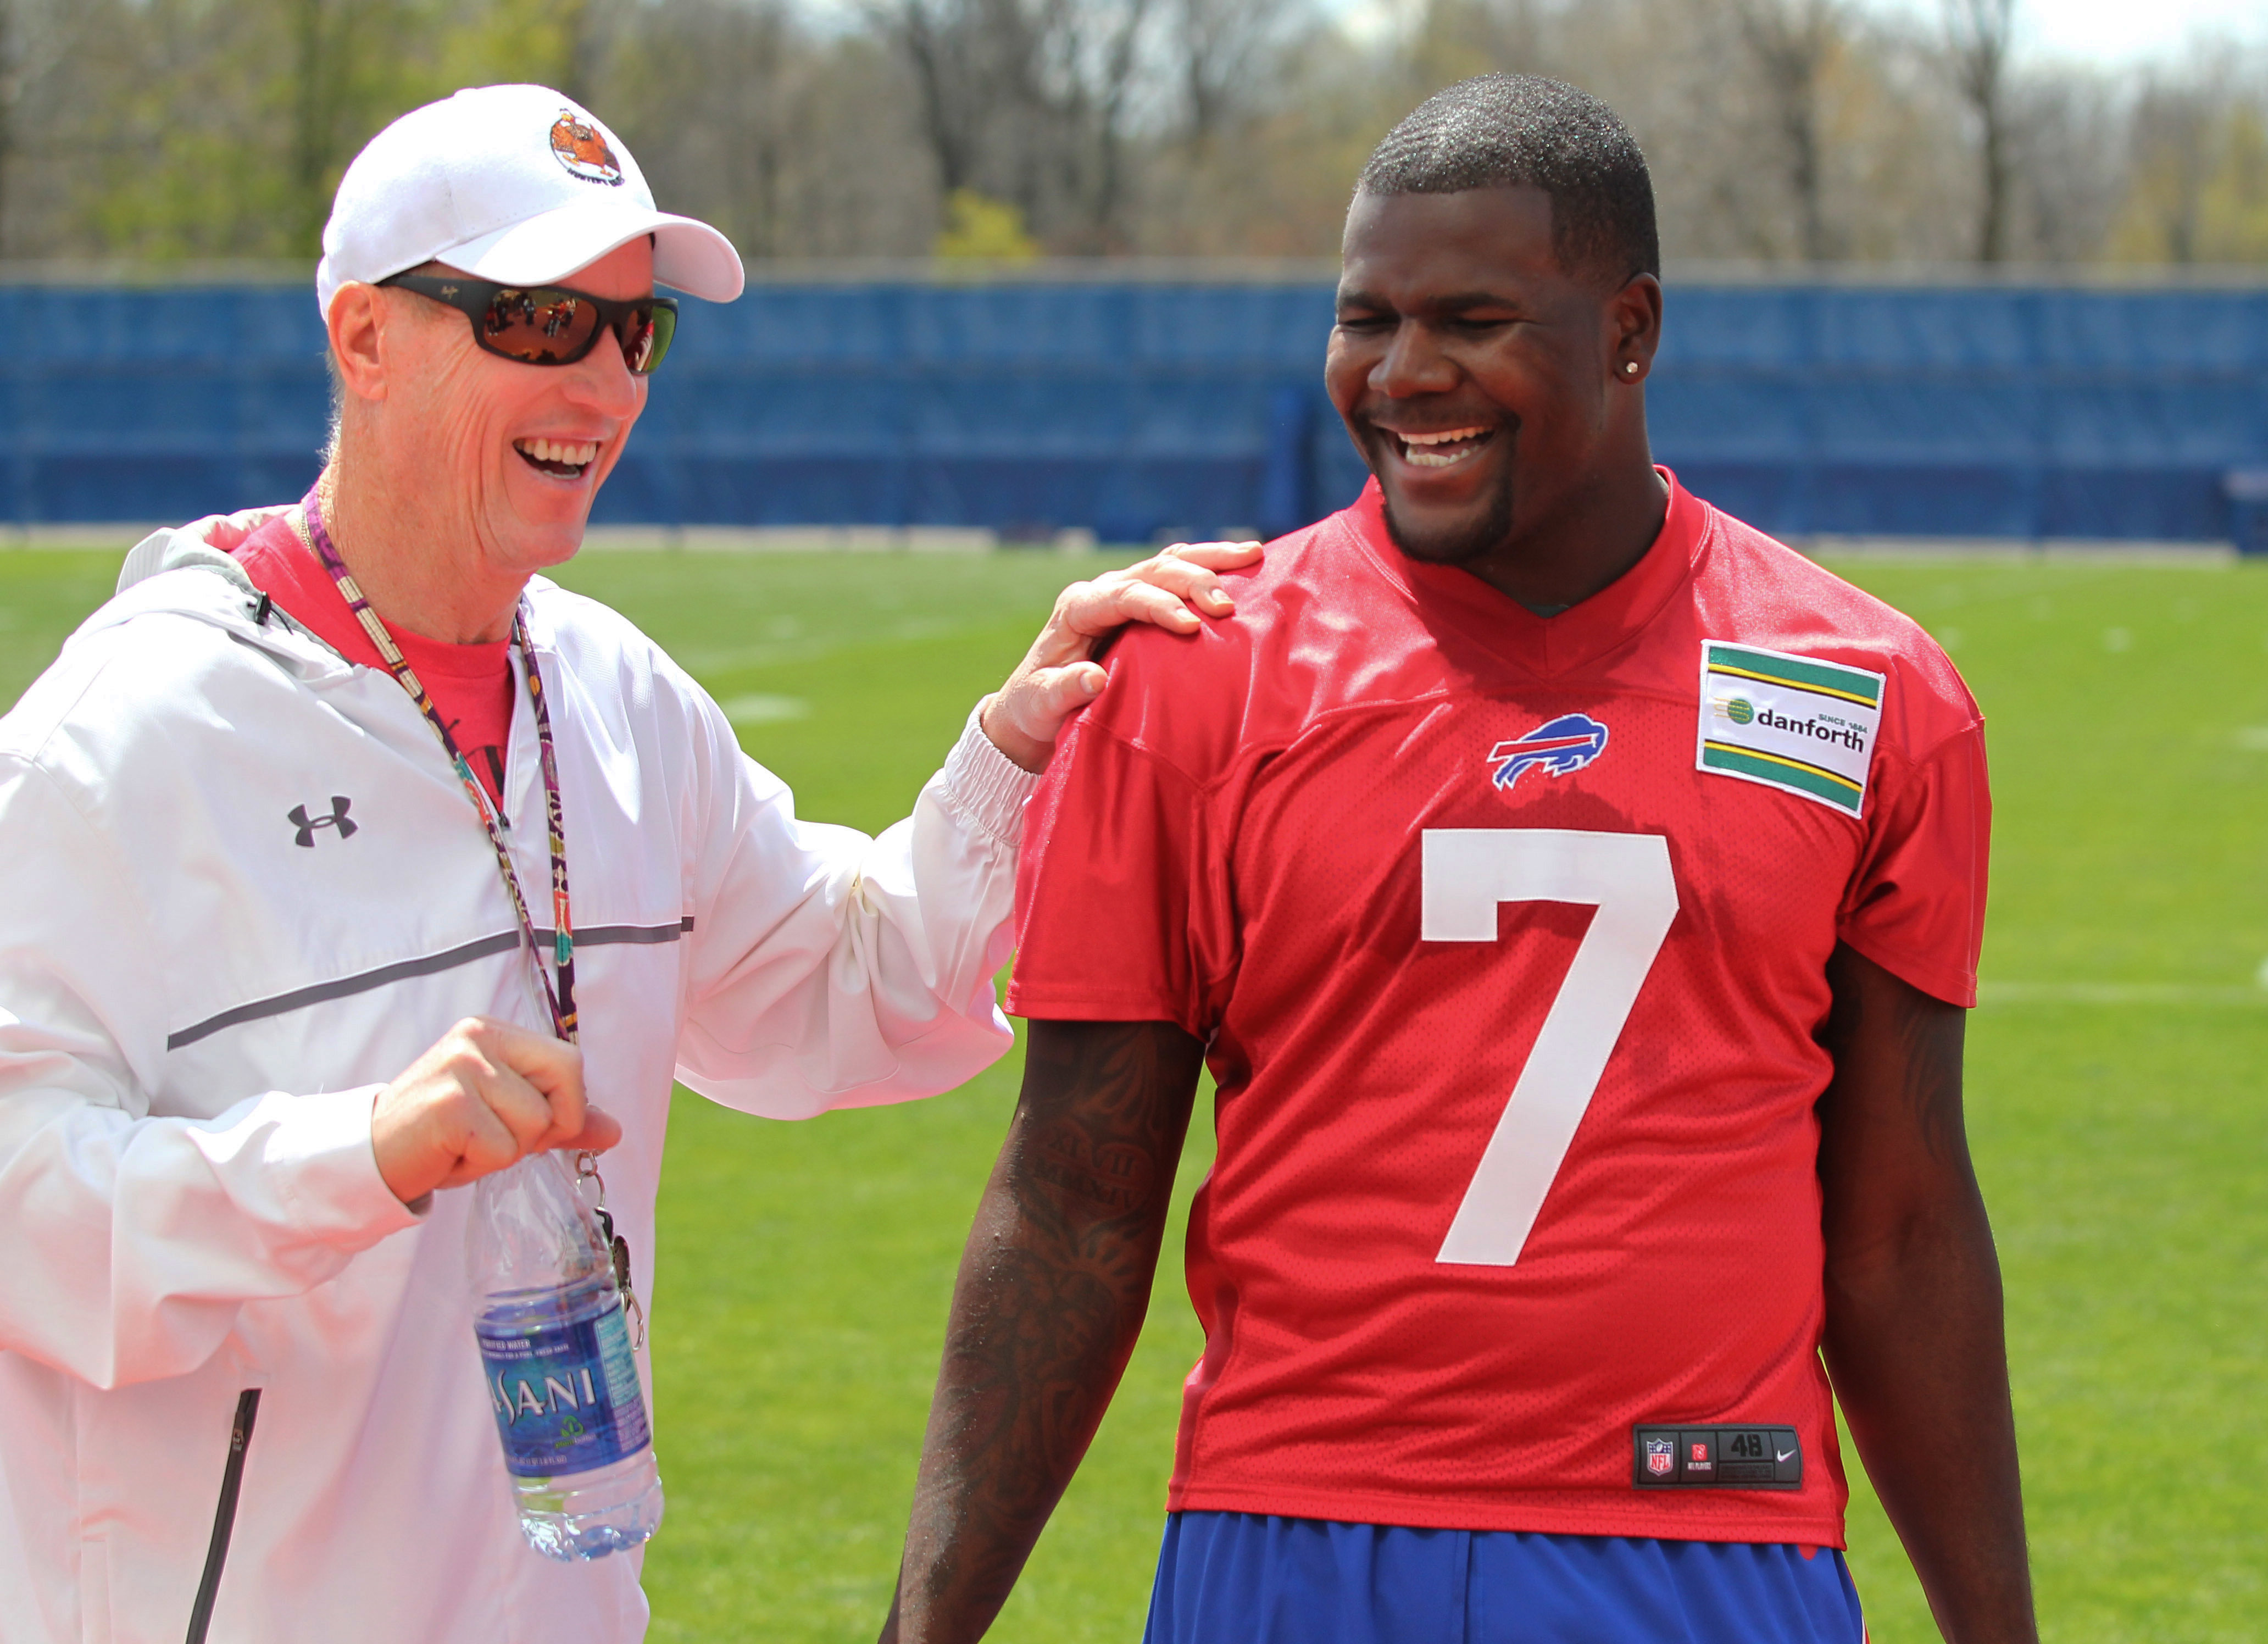 Buffalo Bills quarterback Cardale Jones (7) chats with former Bills quarterback Jim Kelly (L) during their NFL football rookie minicamp in Orchard Park, N.Y., Friday, May 6, 2016. (AP Photo/Bill Wippert)